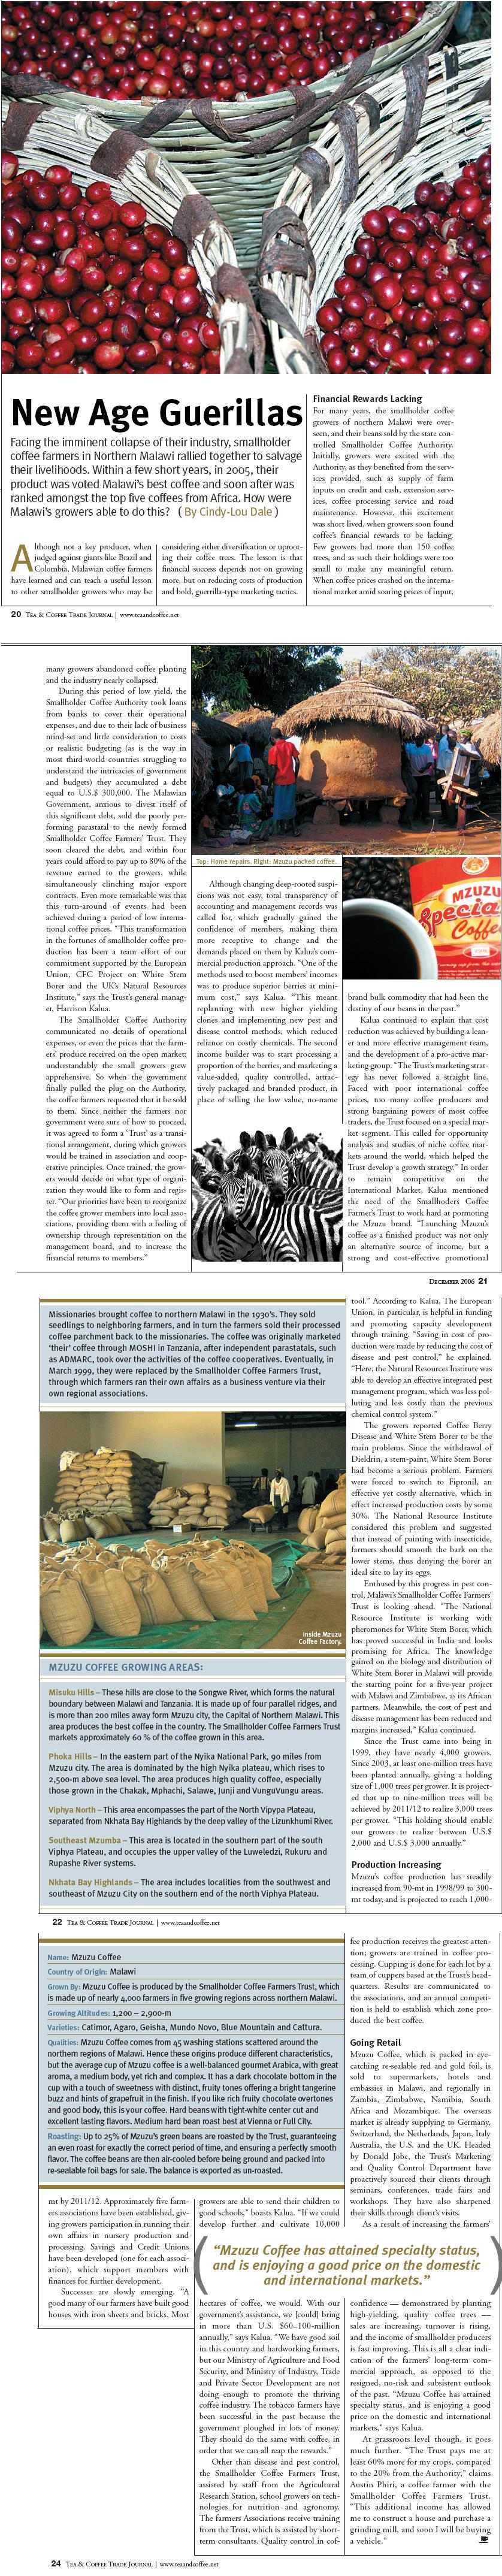 Tea and Coffee Trade Journal, USA - Malawi Coffee